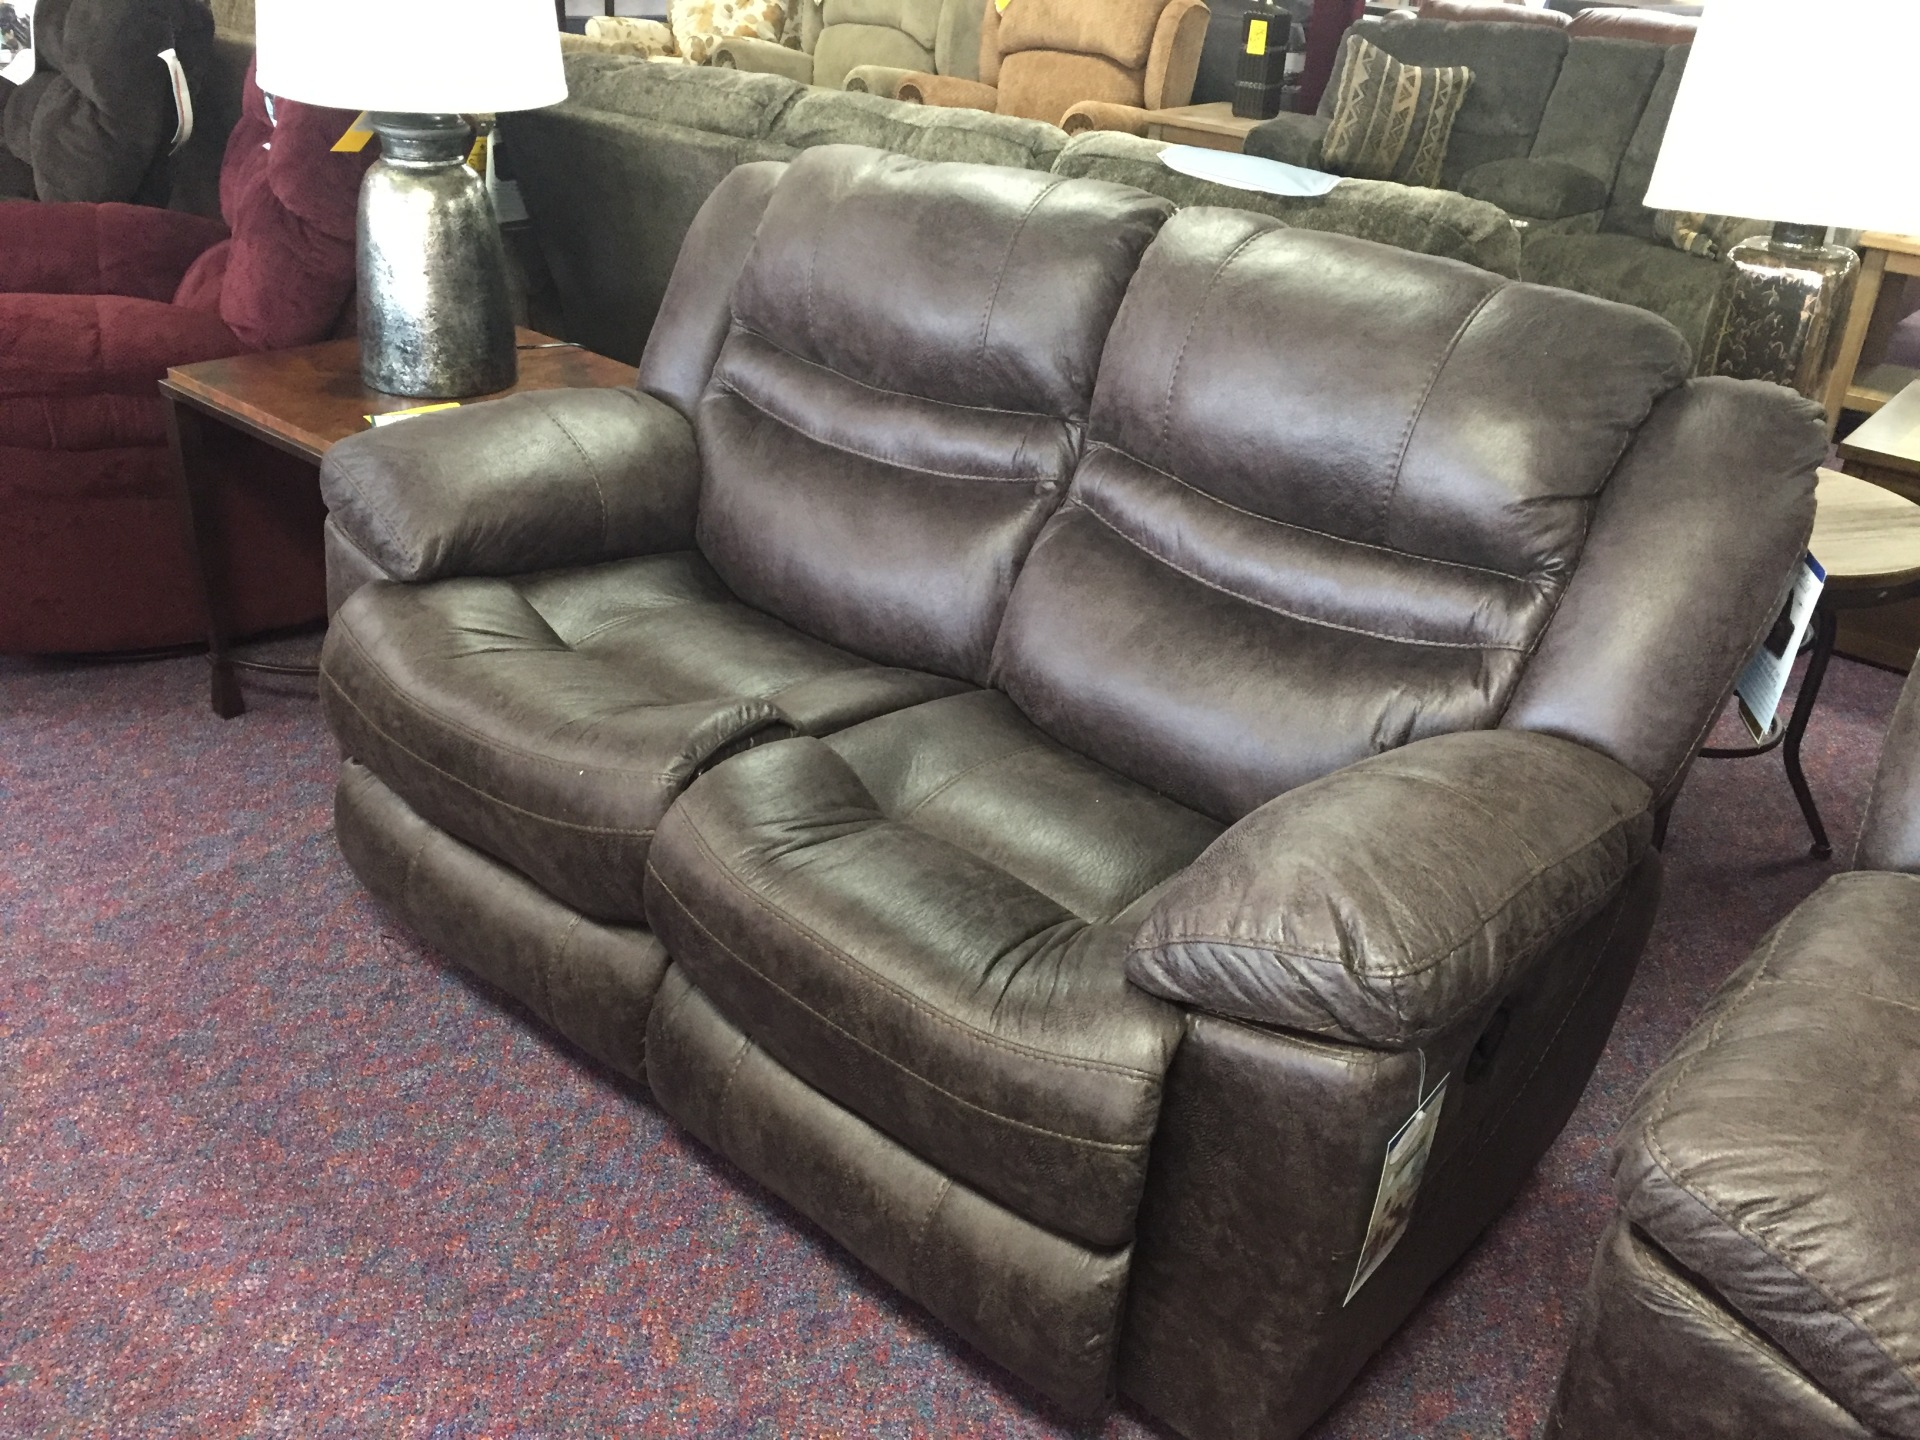 Catnapper Valiant Rocking/ Reclining Love seat-